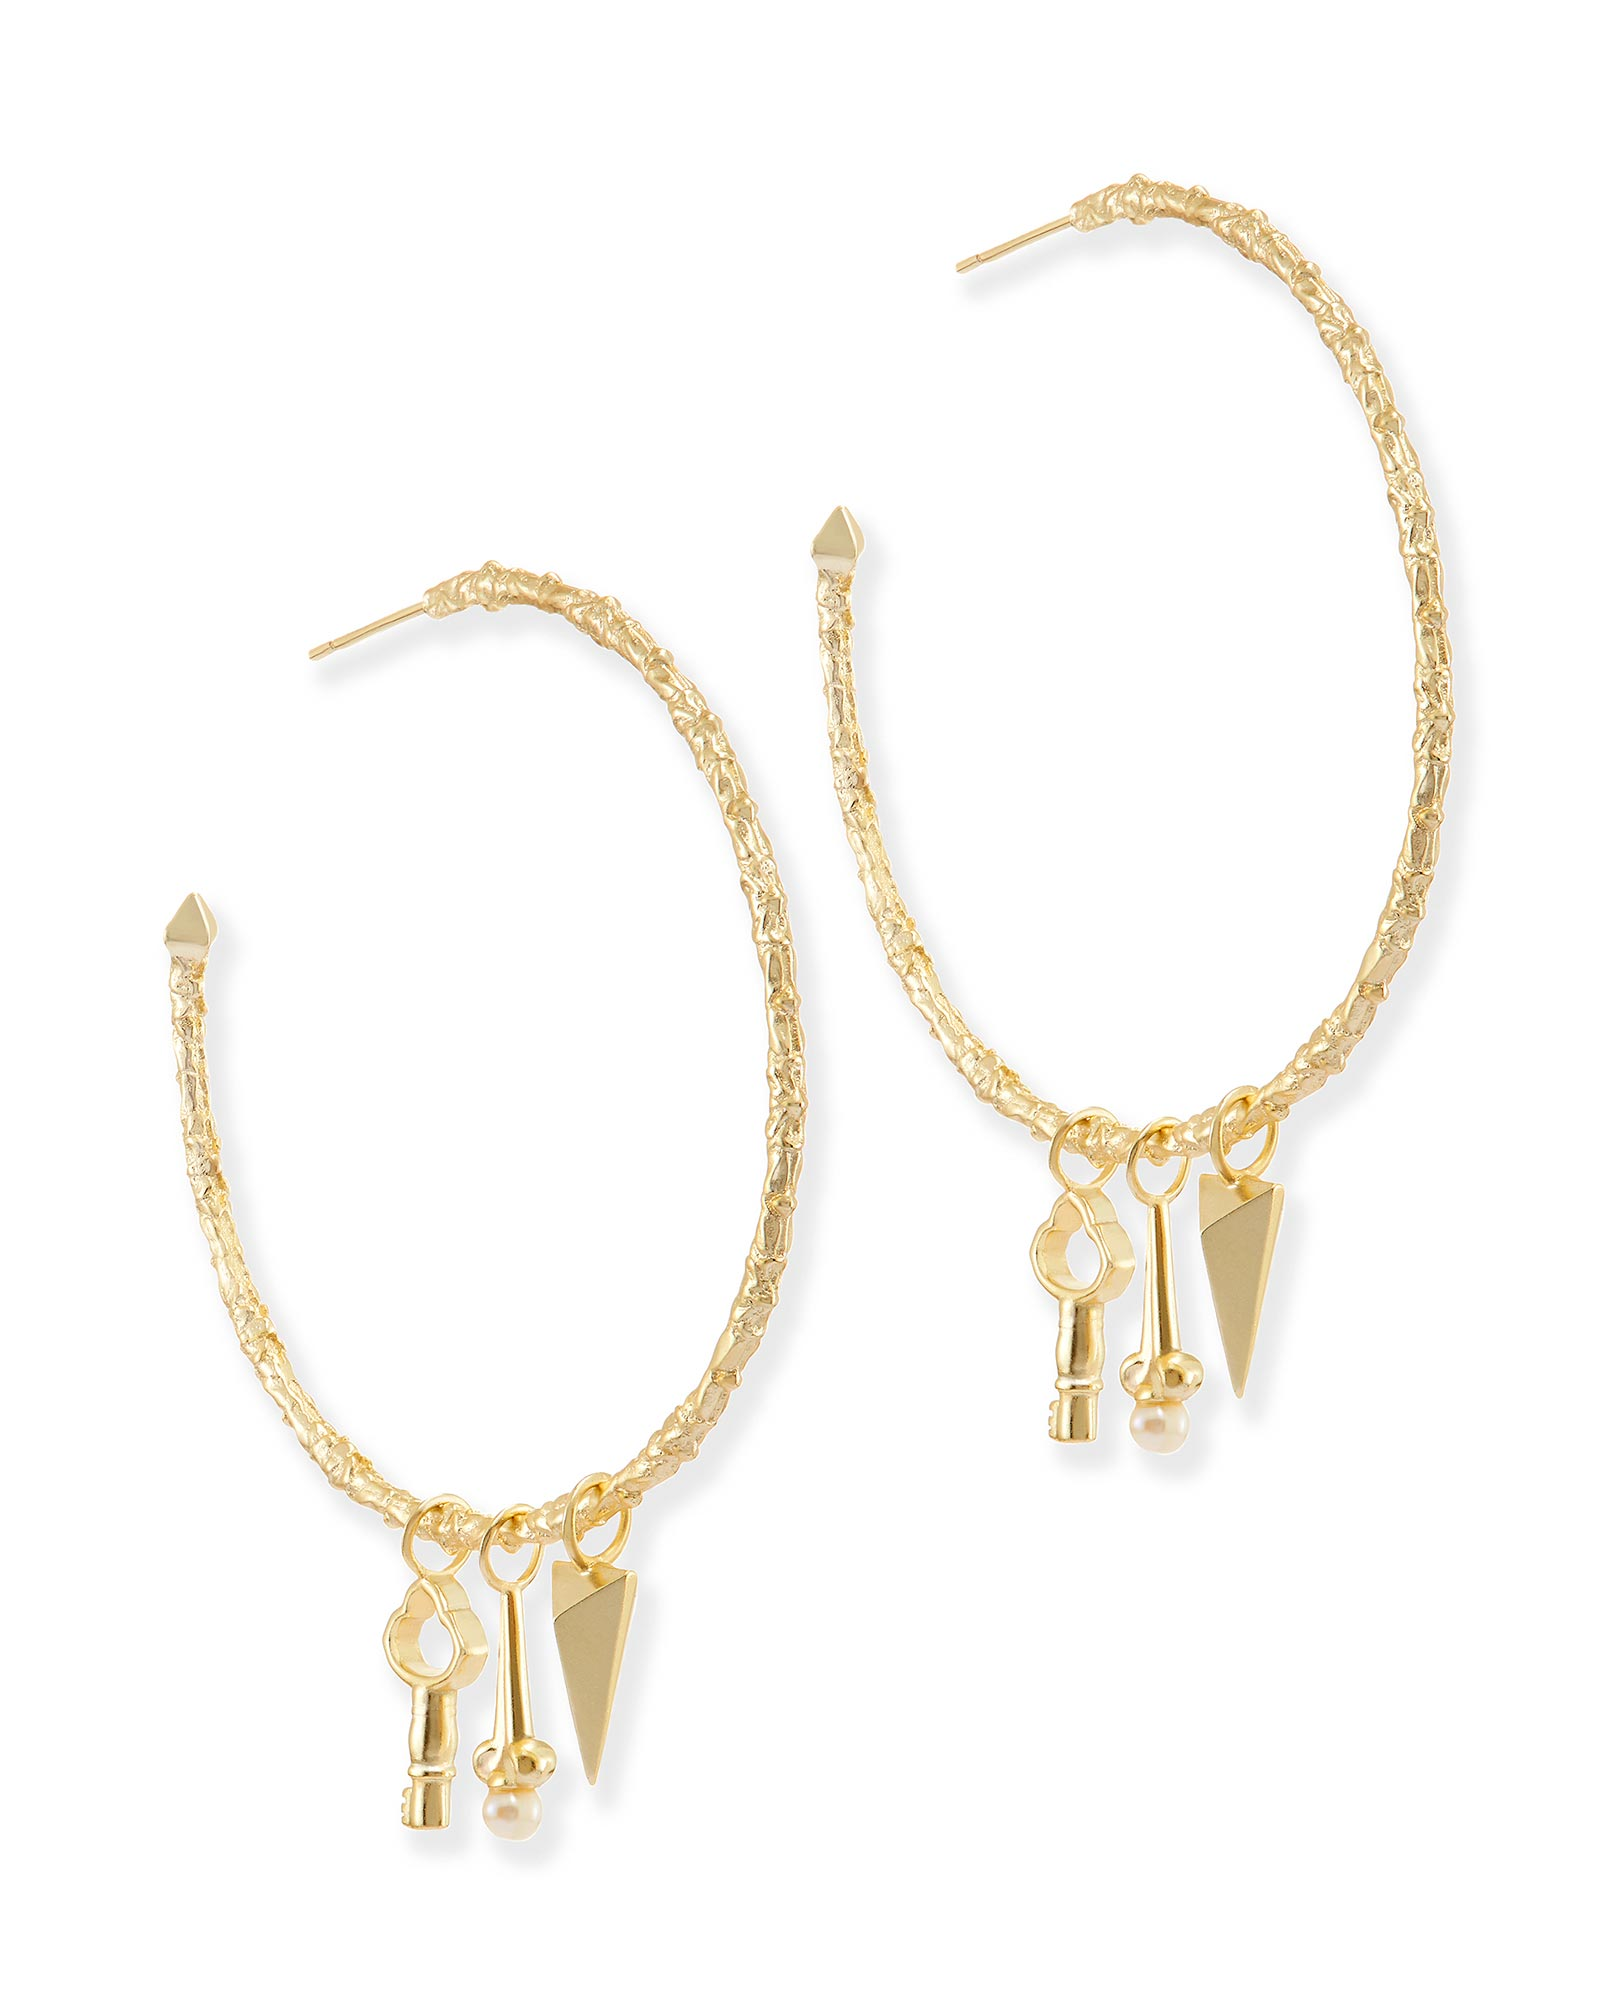 Shiloh Hoop Earrings in Gold